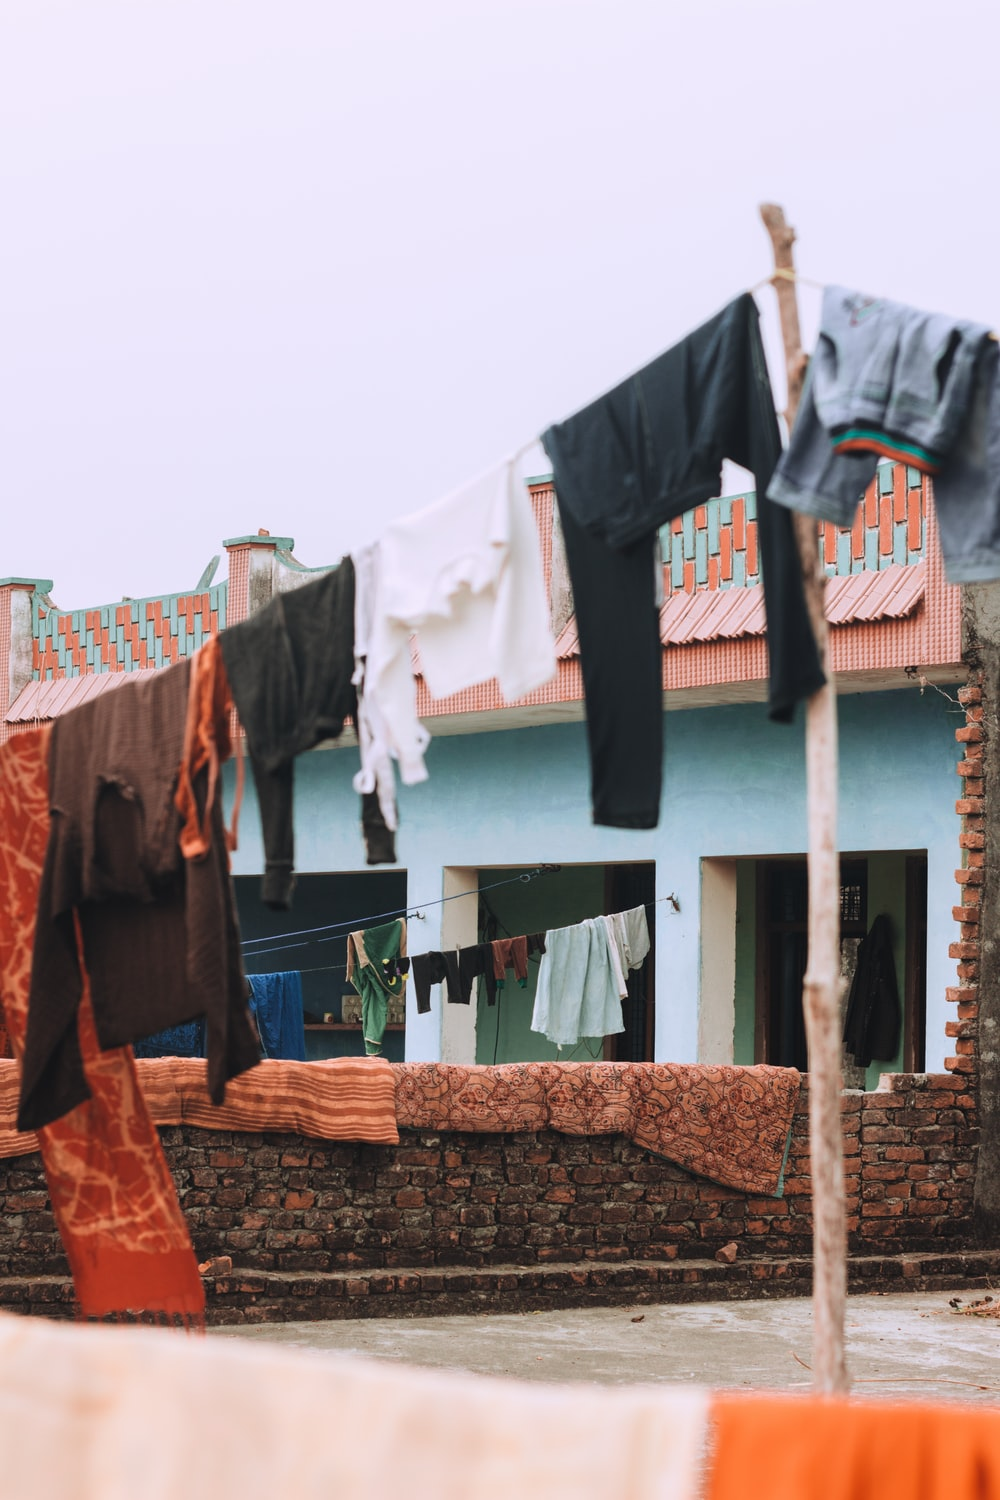 clothes hanged on string during daytime